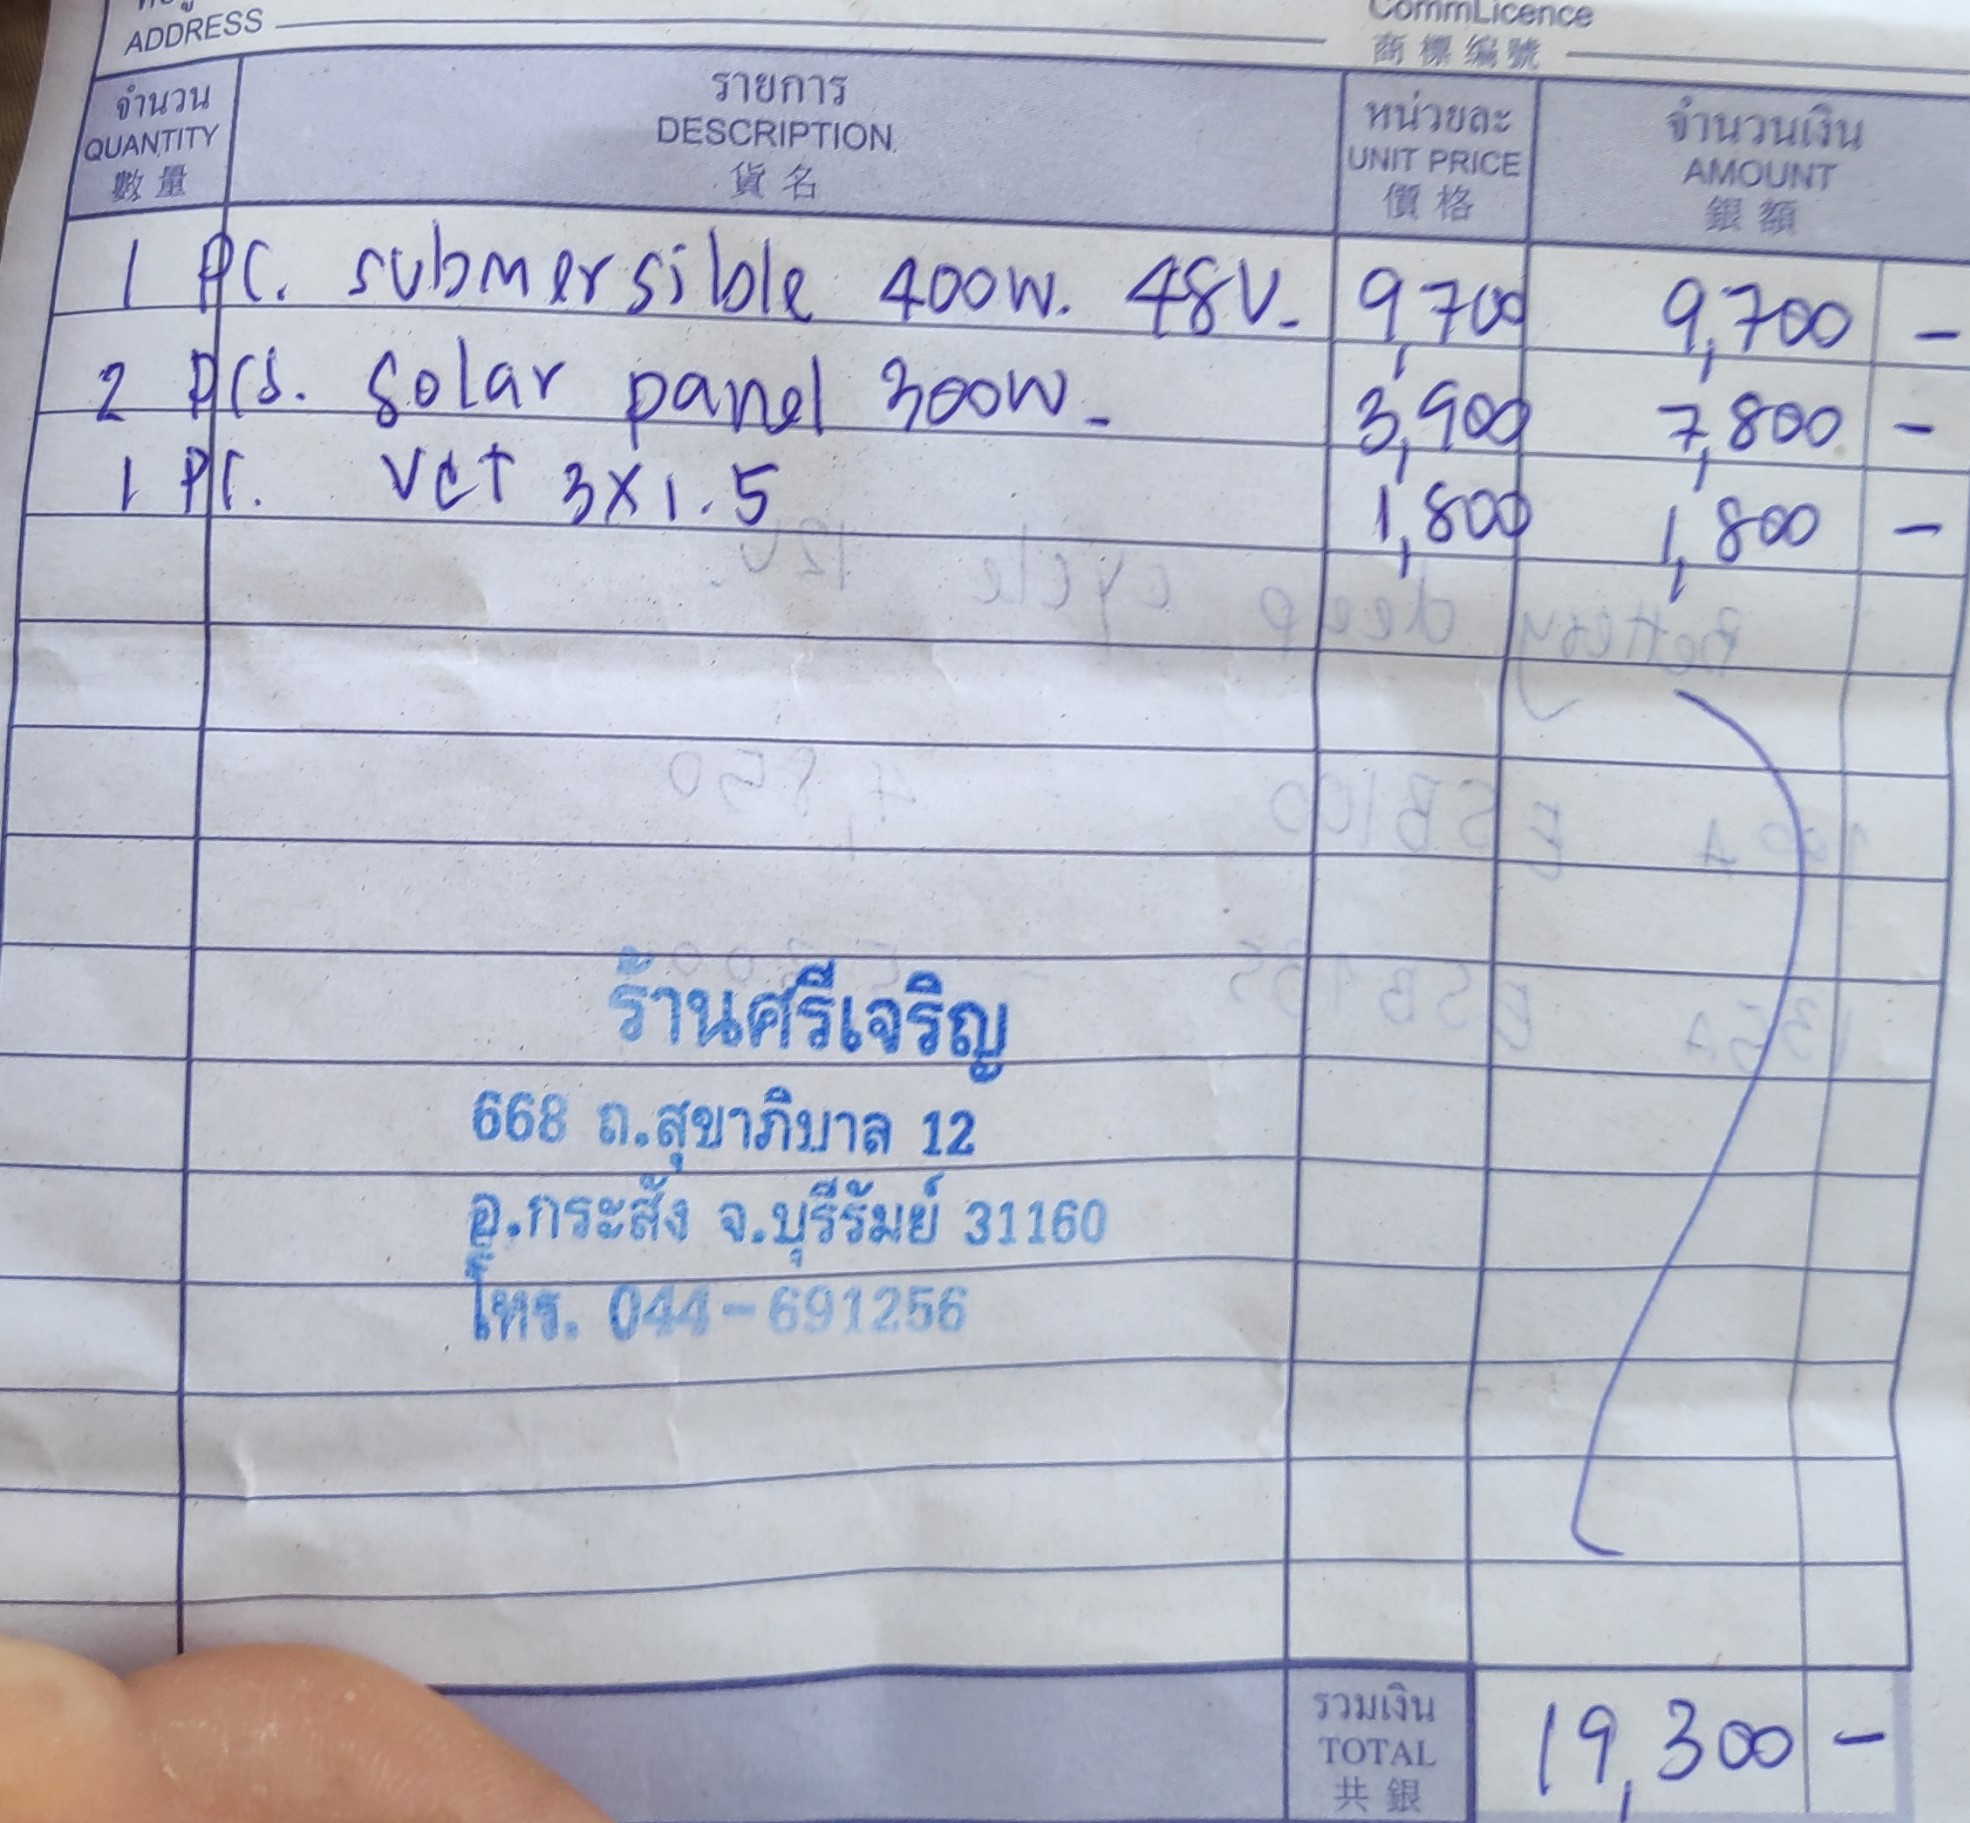 Invoice for the solar pump 2